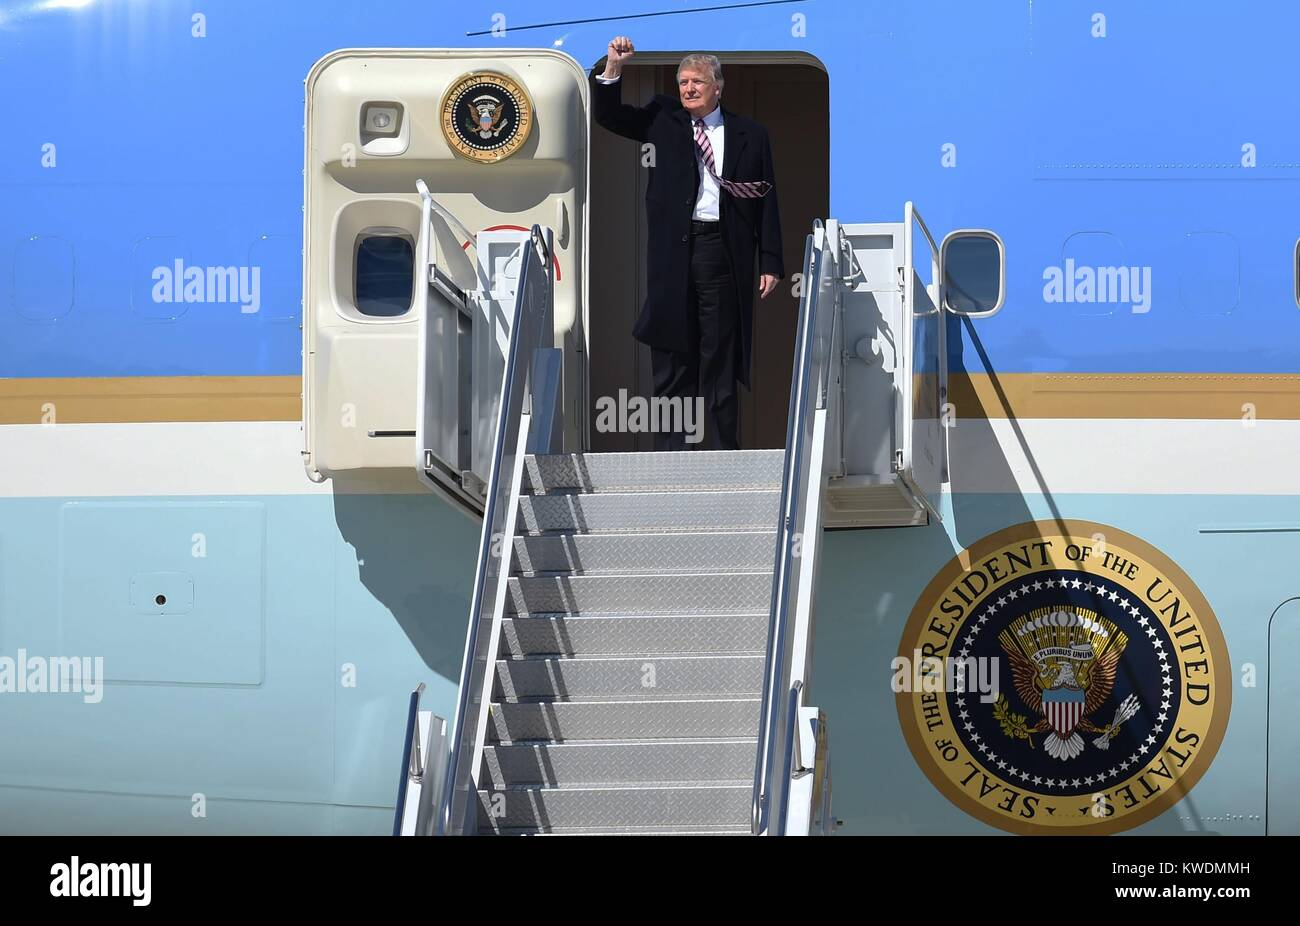 President Donald Trump gives a clenched fist salute from Air Force One, March 2, 2017. On arriving at Langley, VA, Stock Photo